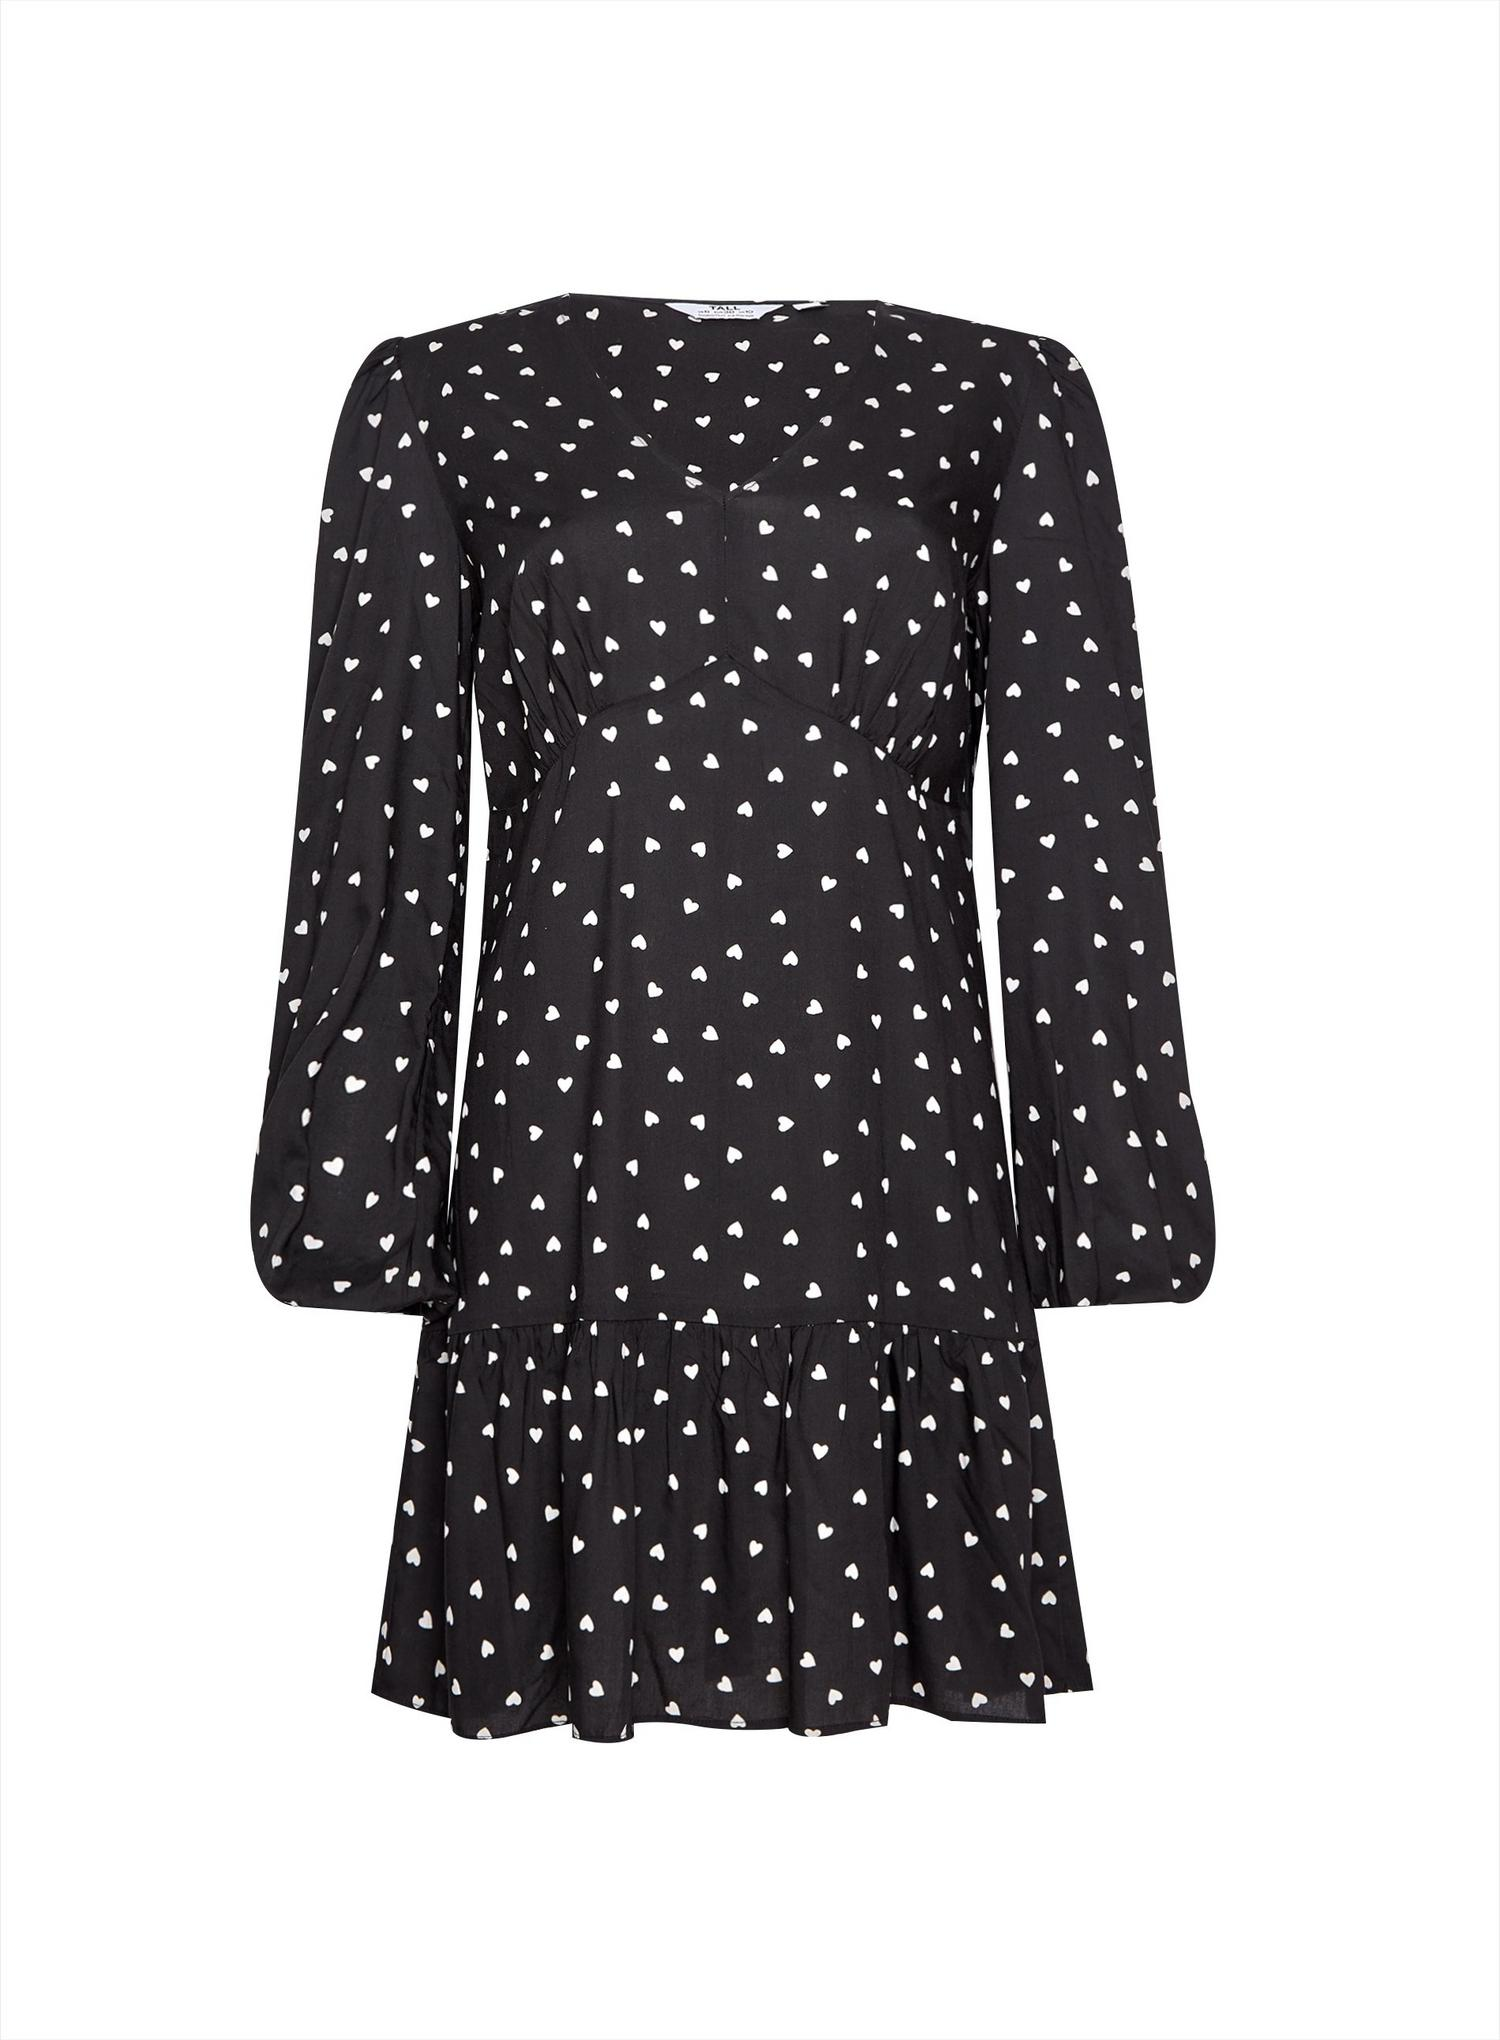 144 Tall Spot Smock Dress image number 4